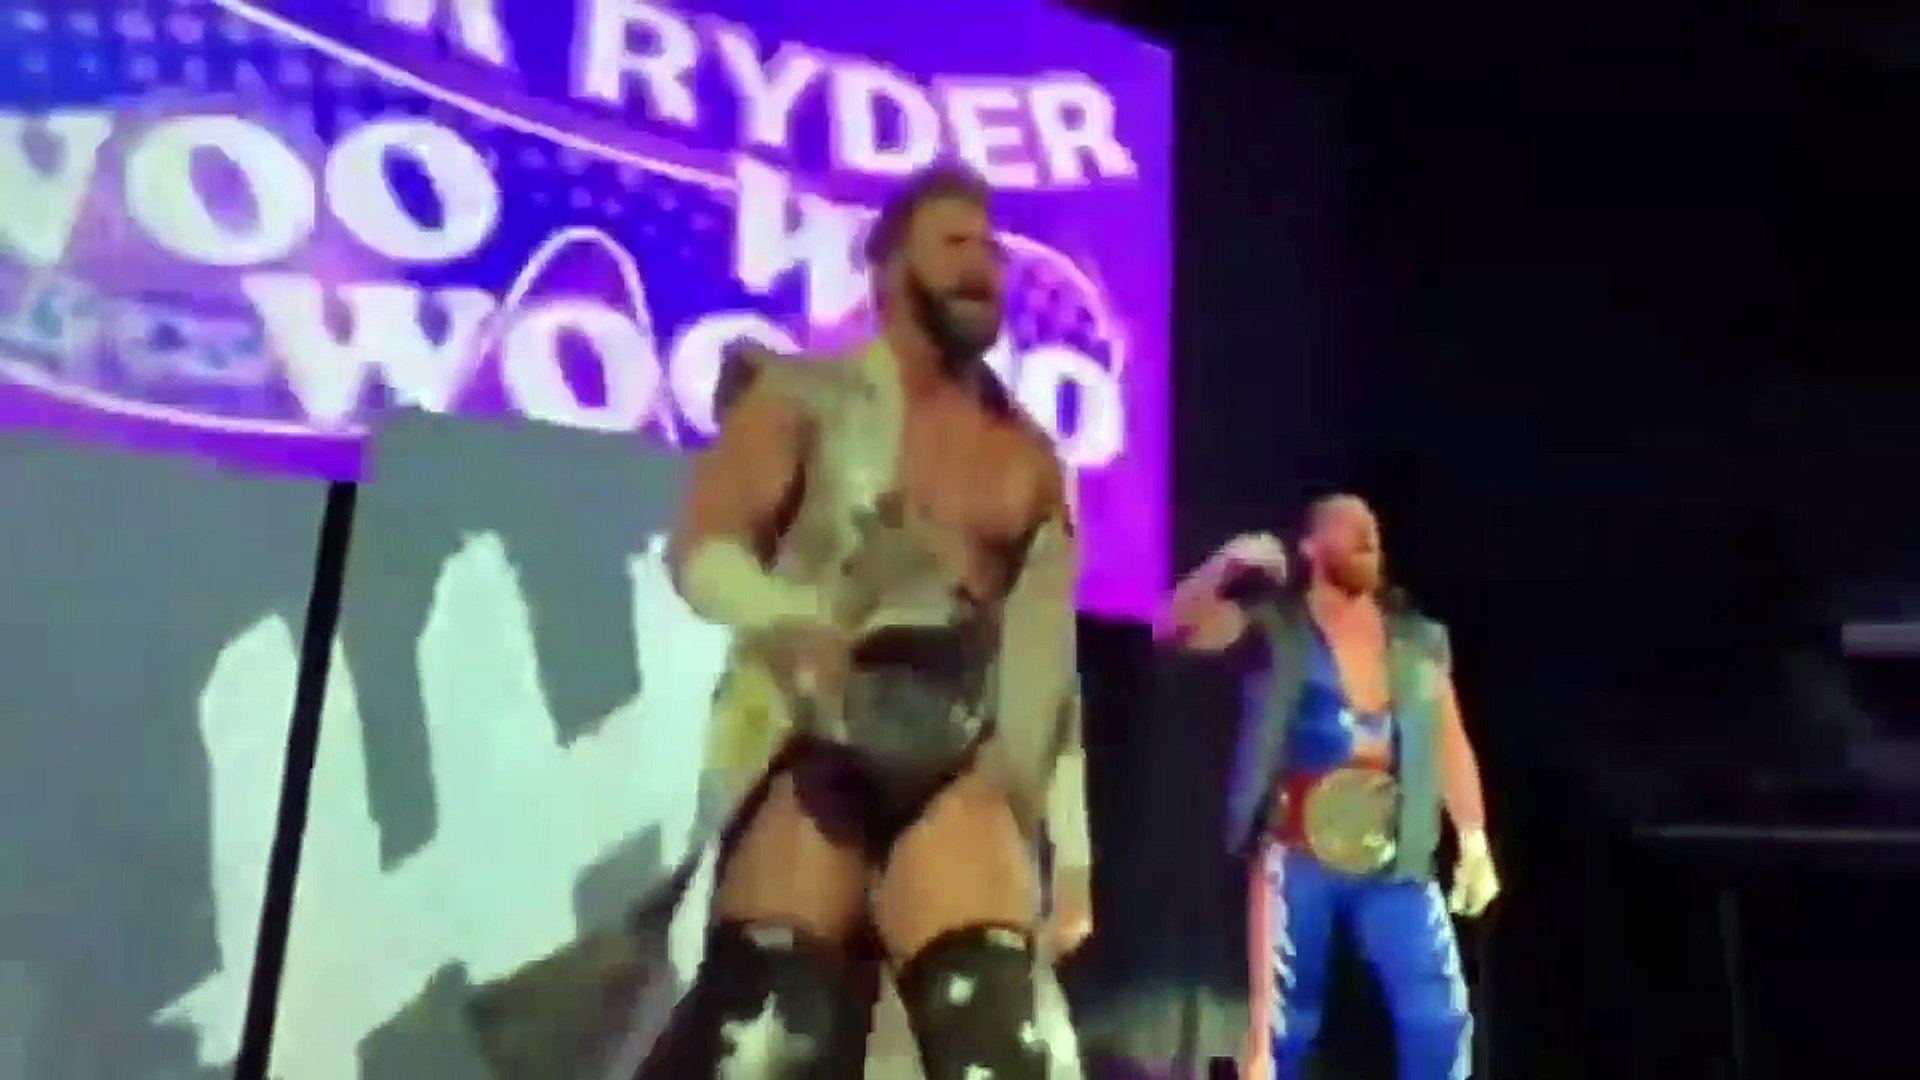 WWE RAW Live Event Full Highlights EvansVille 2019 HD - WWE RAW Live Highlights 5 May 2019 HD